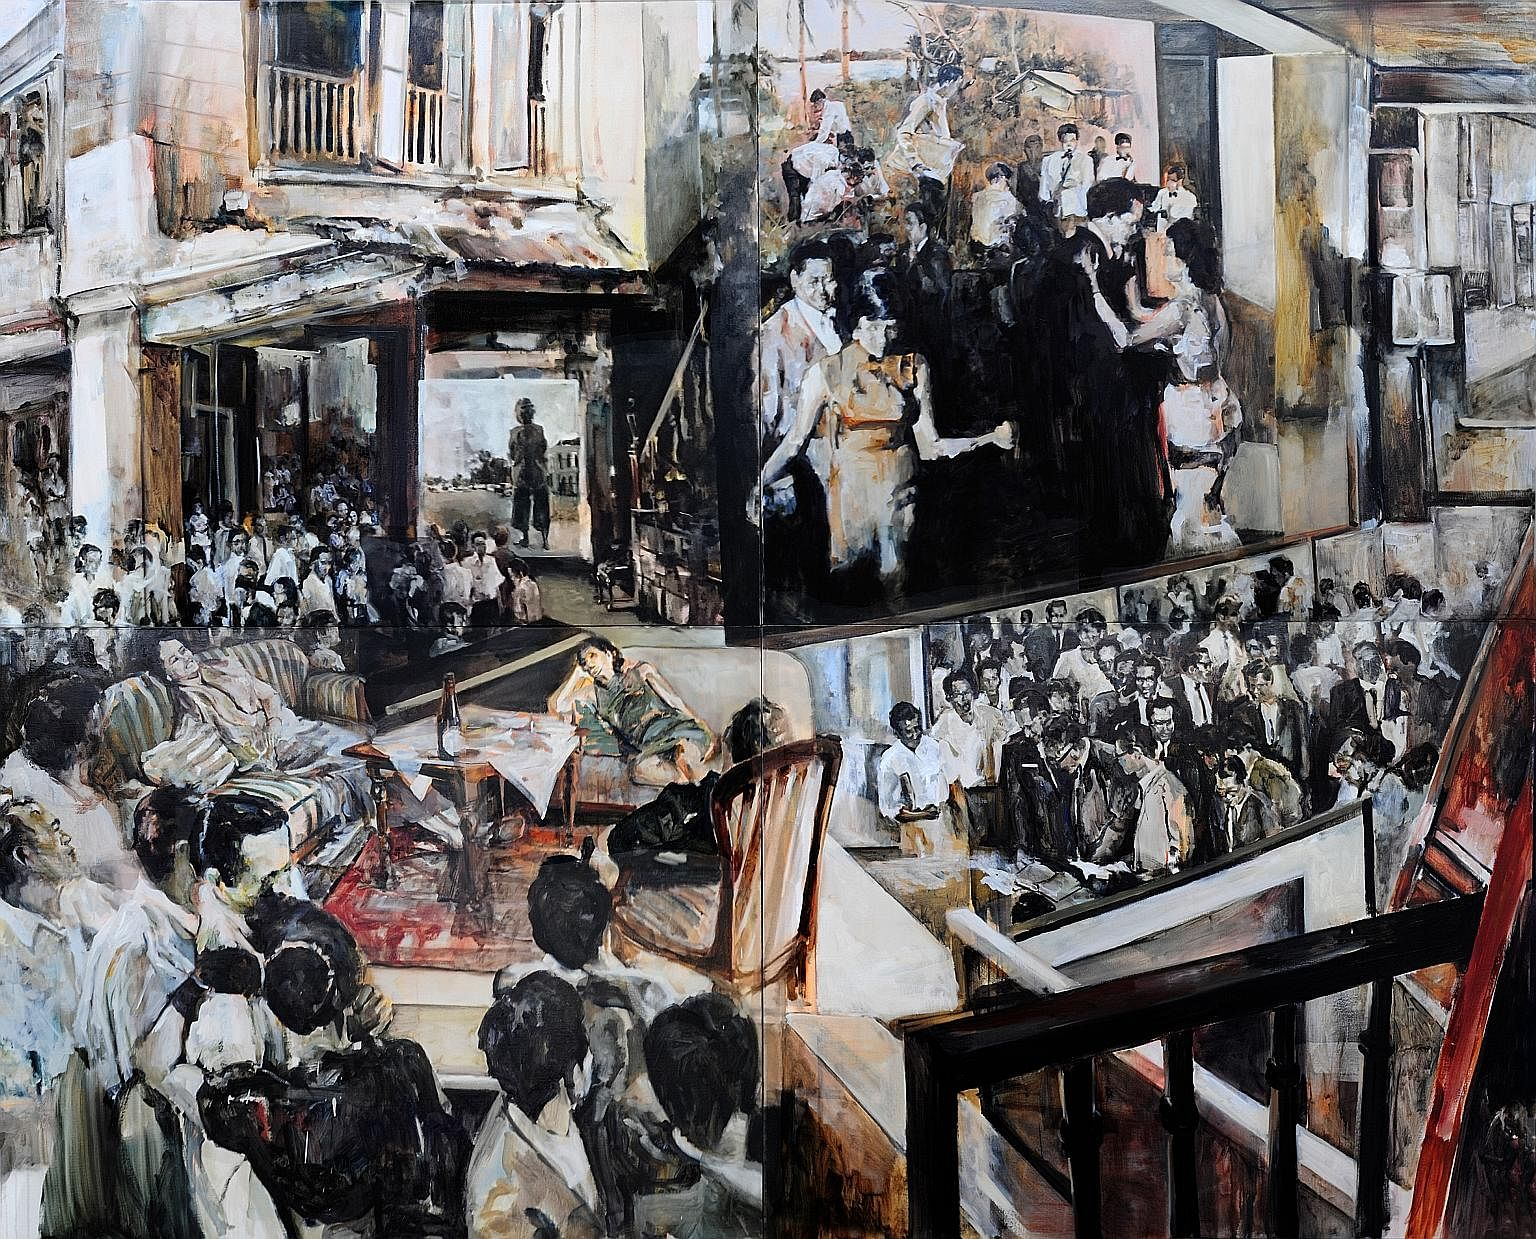 The Vernissage by Hilmi Johandi (above), in The City Book.